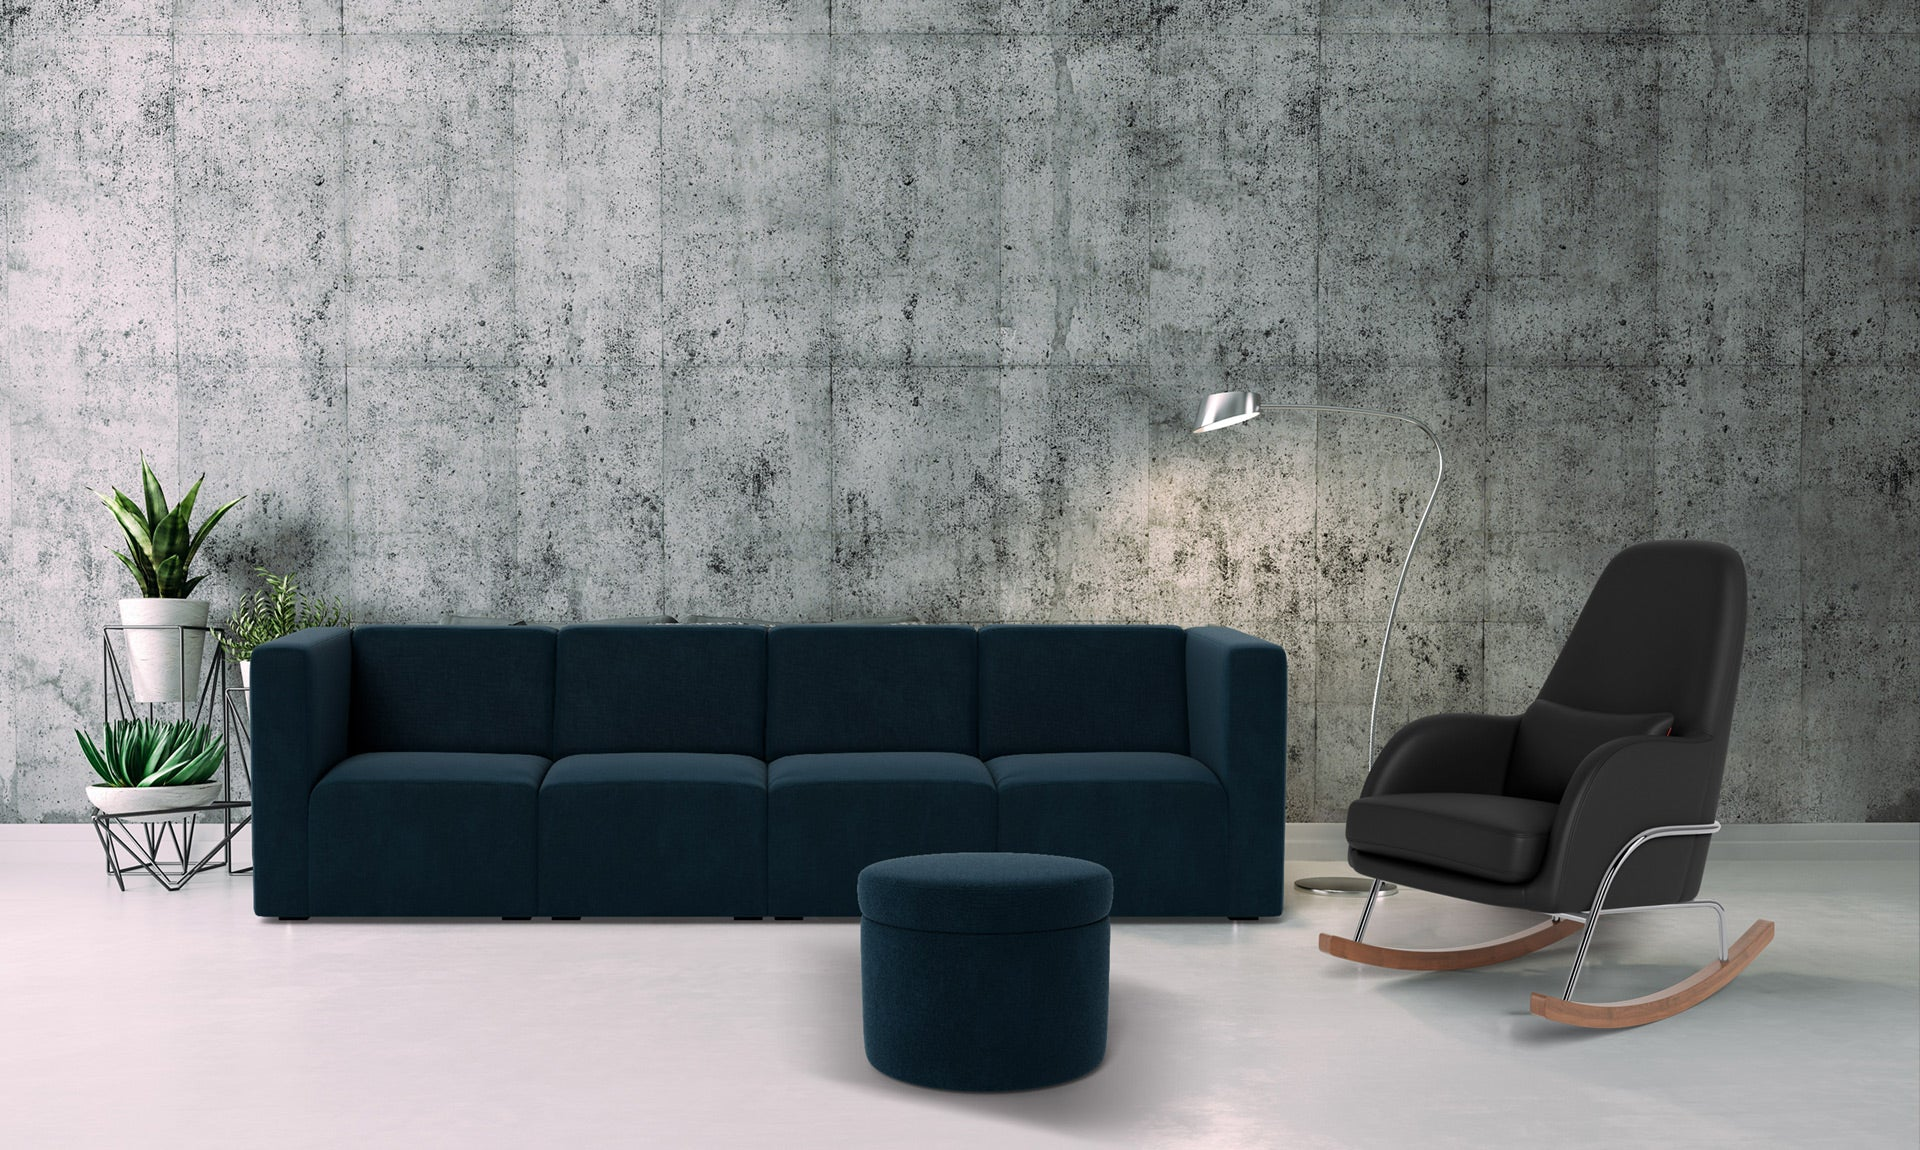 The Bruce 4-seater Sofa Couch